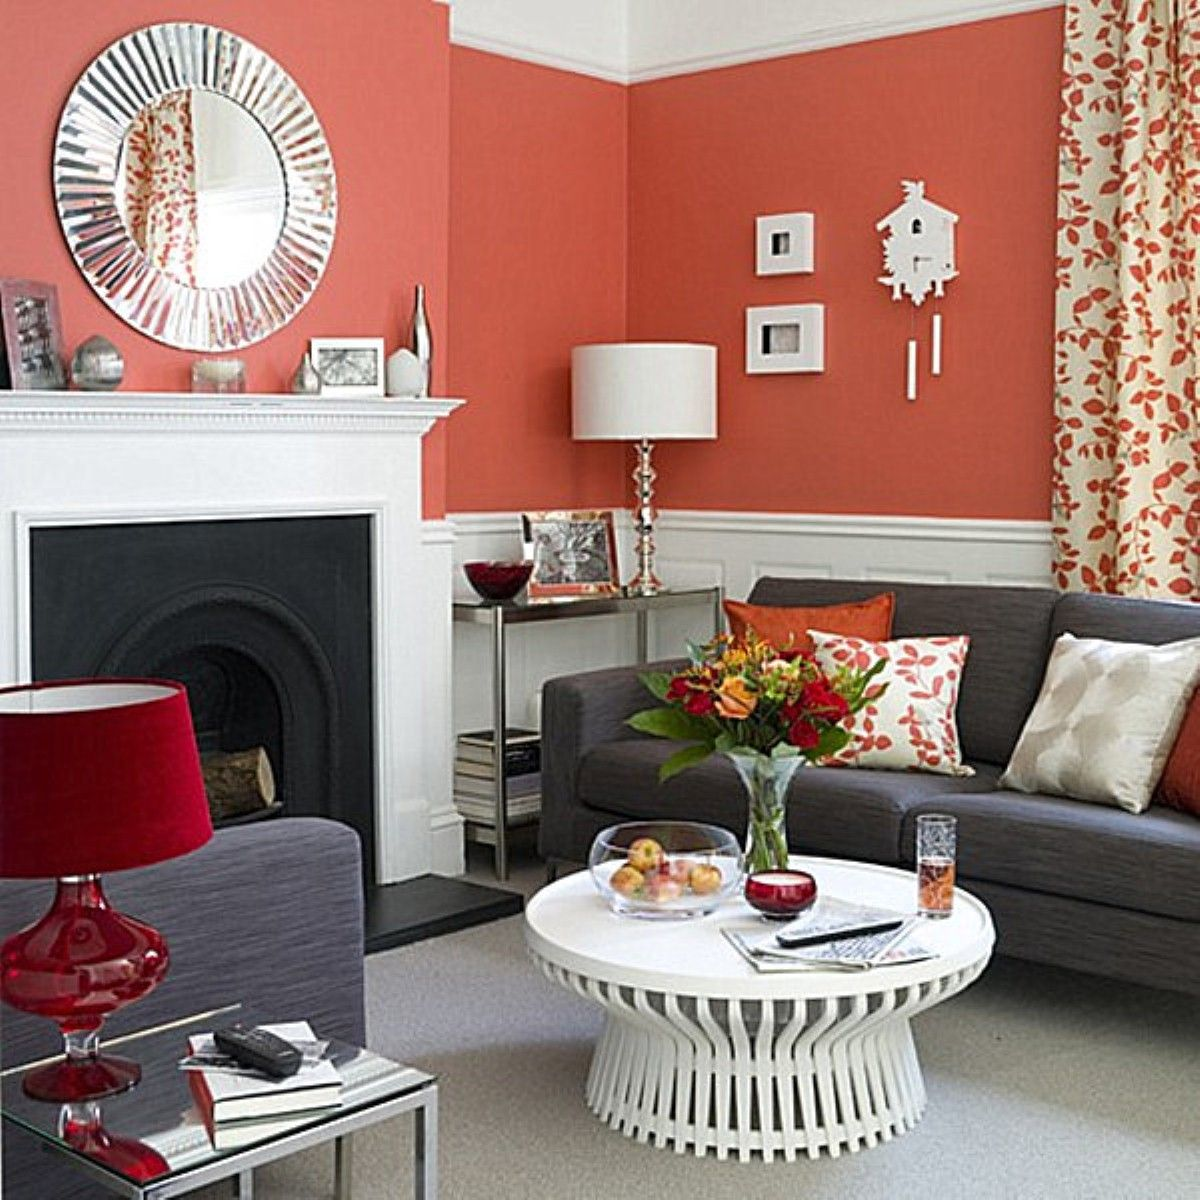 peach and grey room - Google Search | Coral living rooms ...